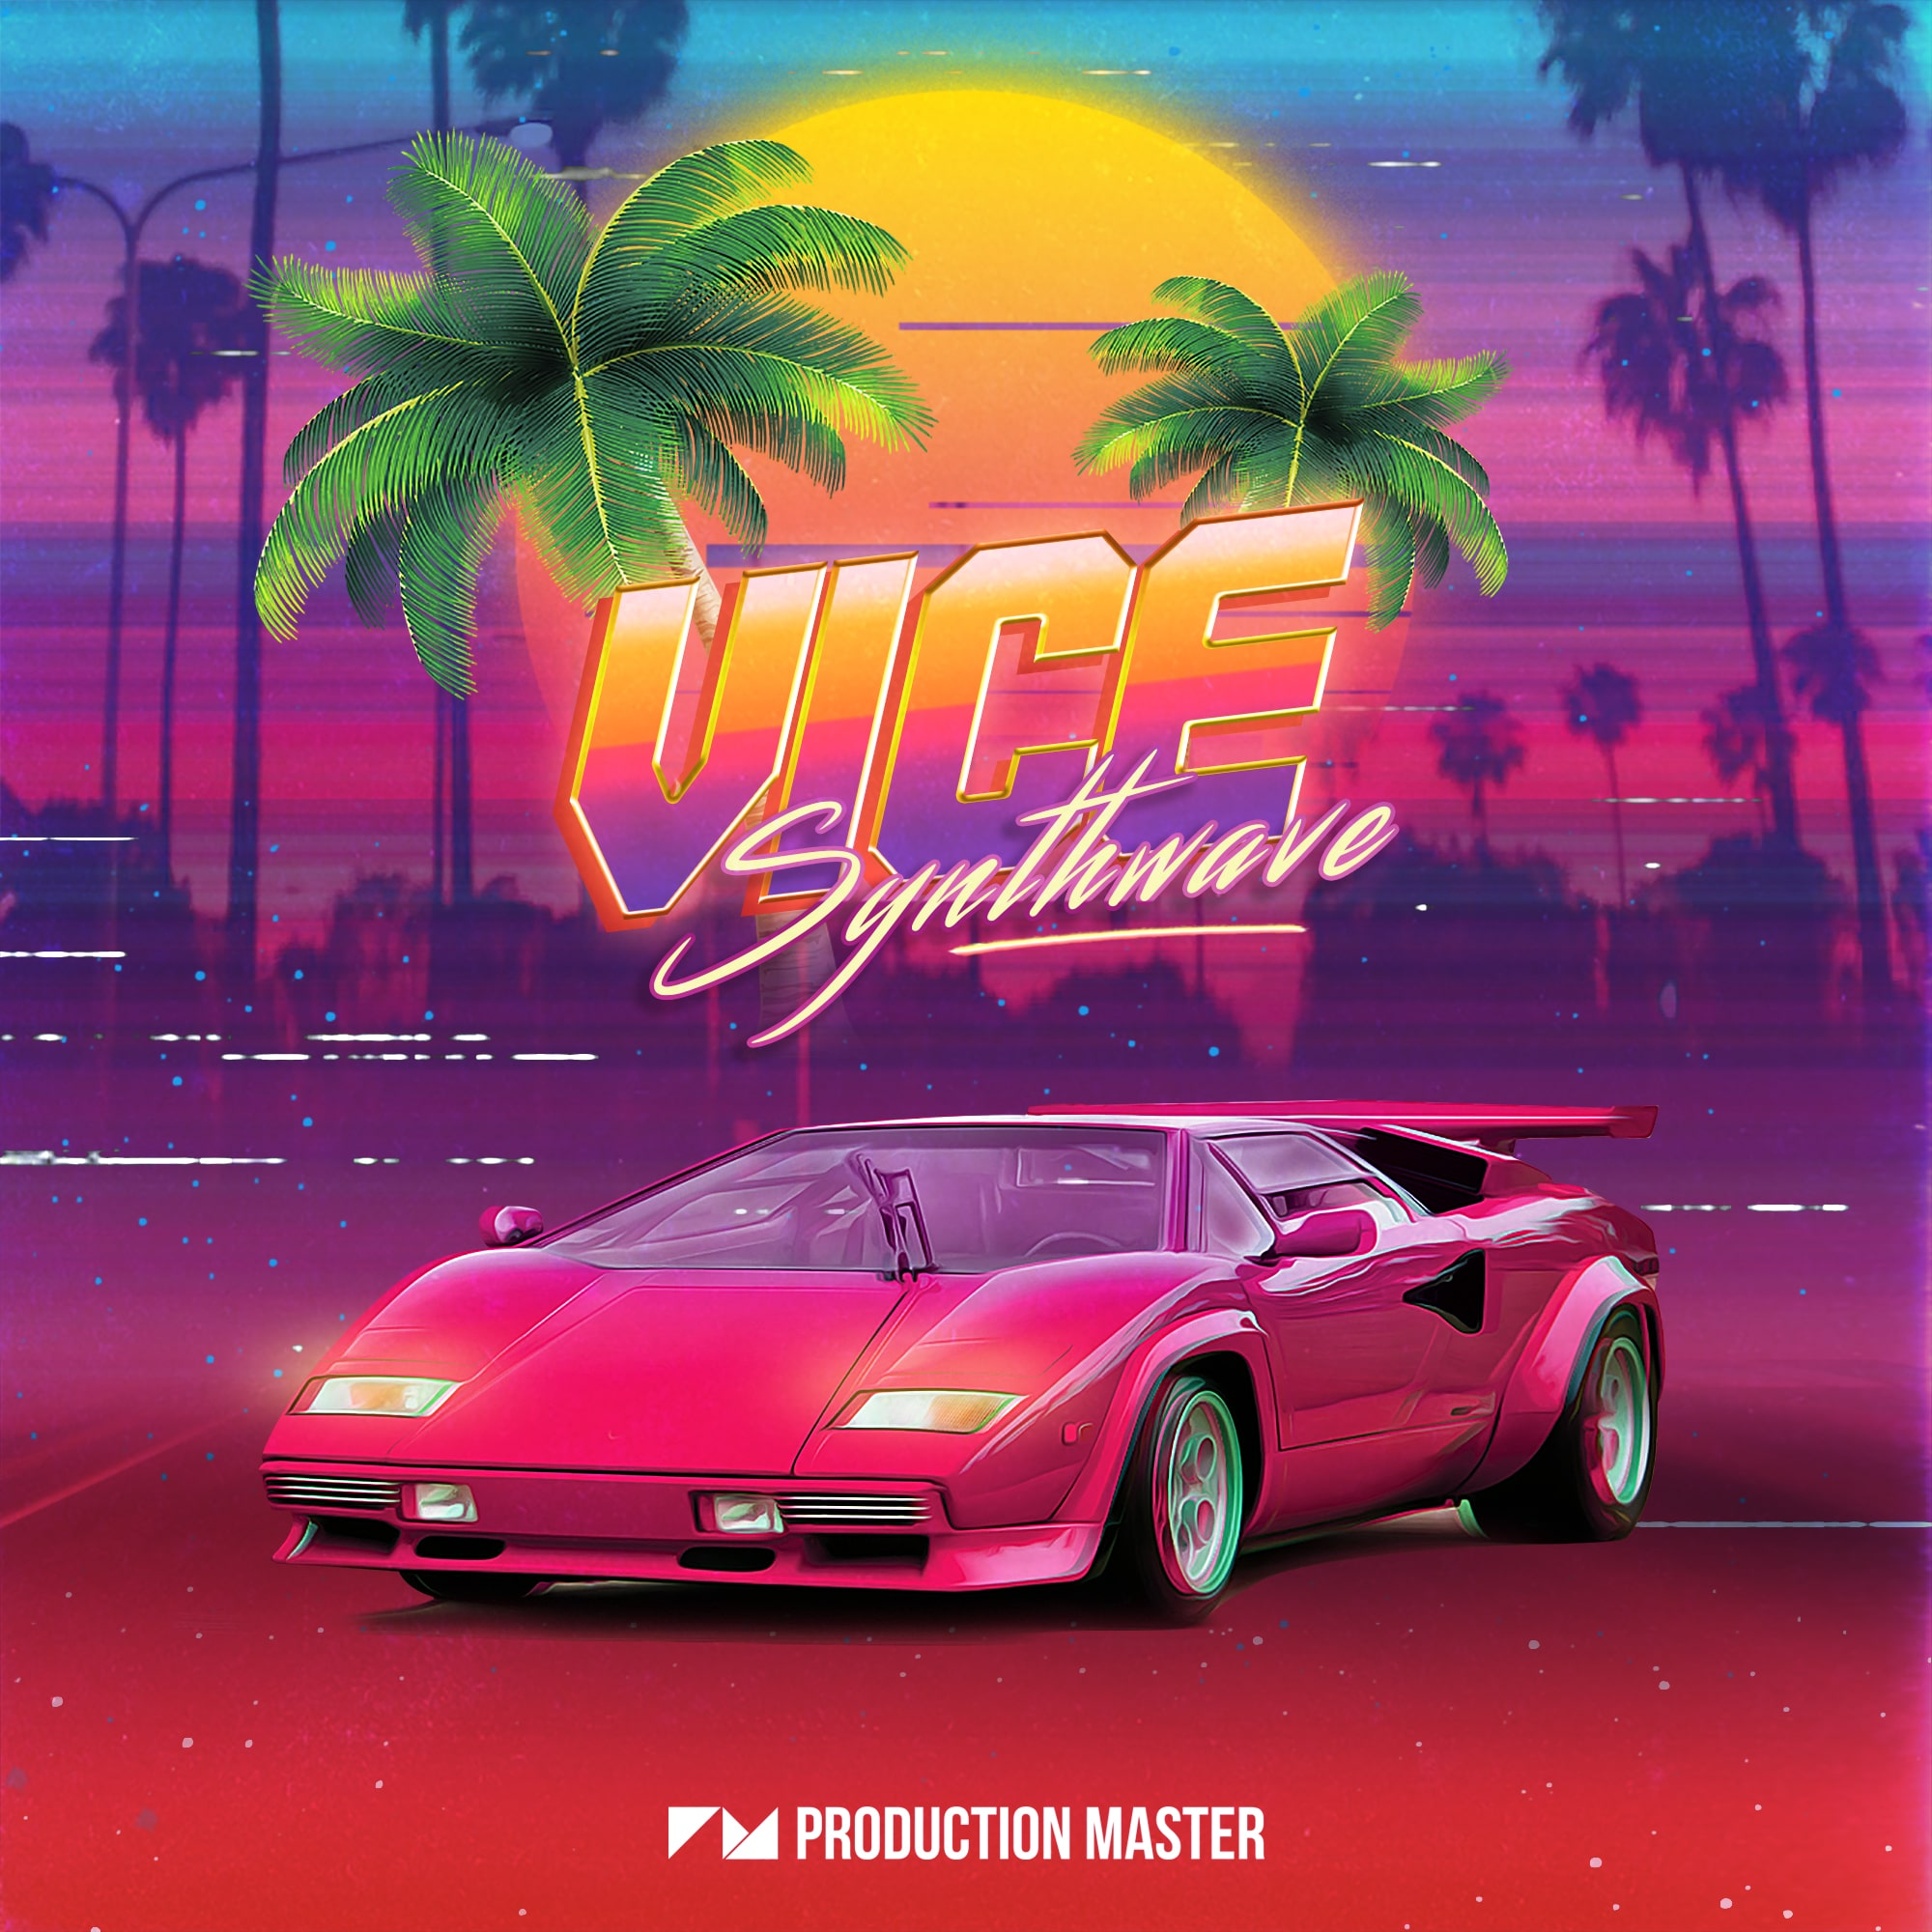 Production Master – Vice Synthwave